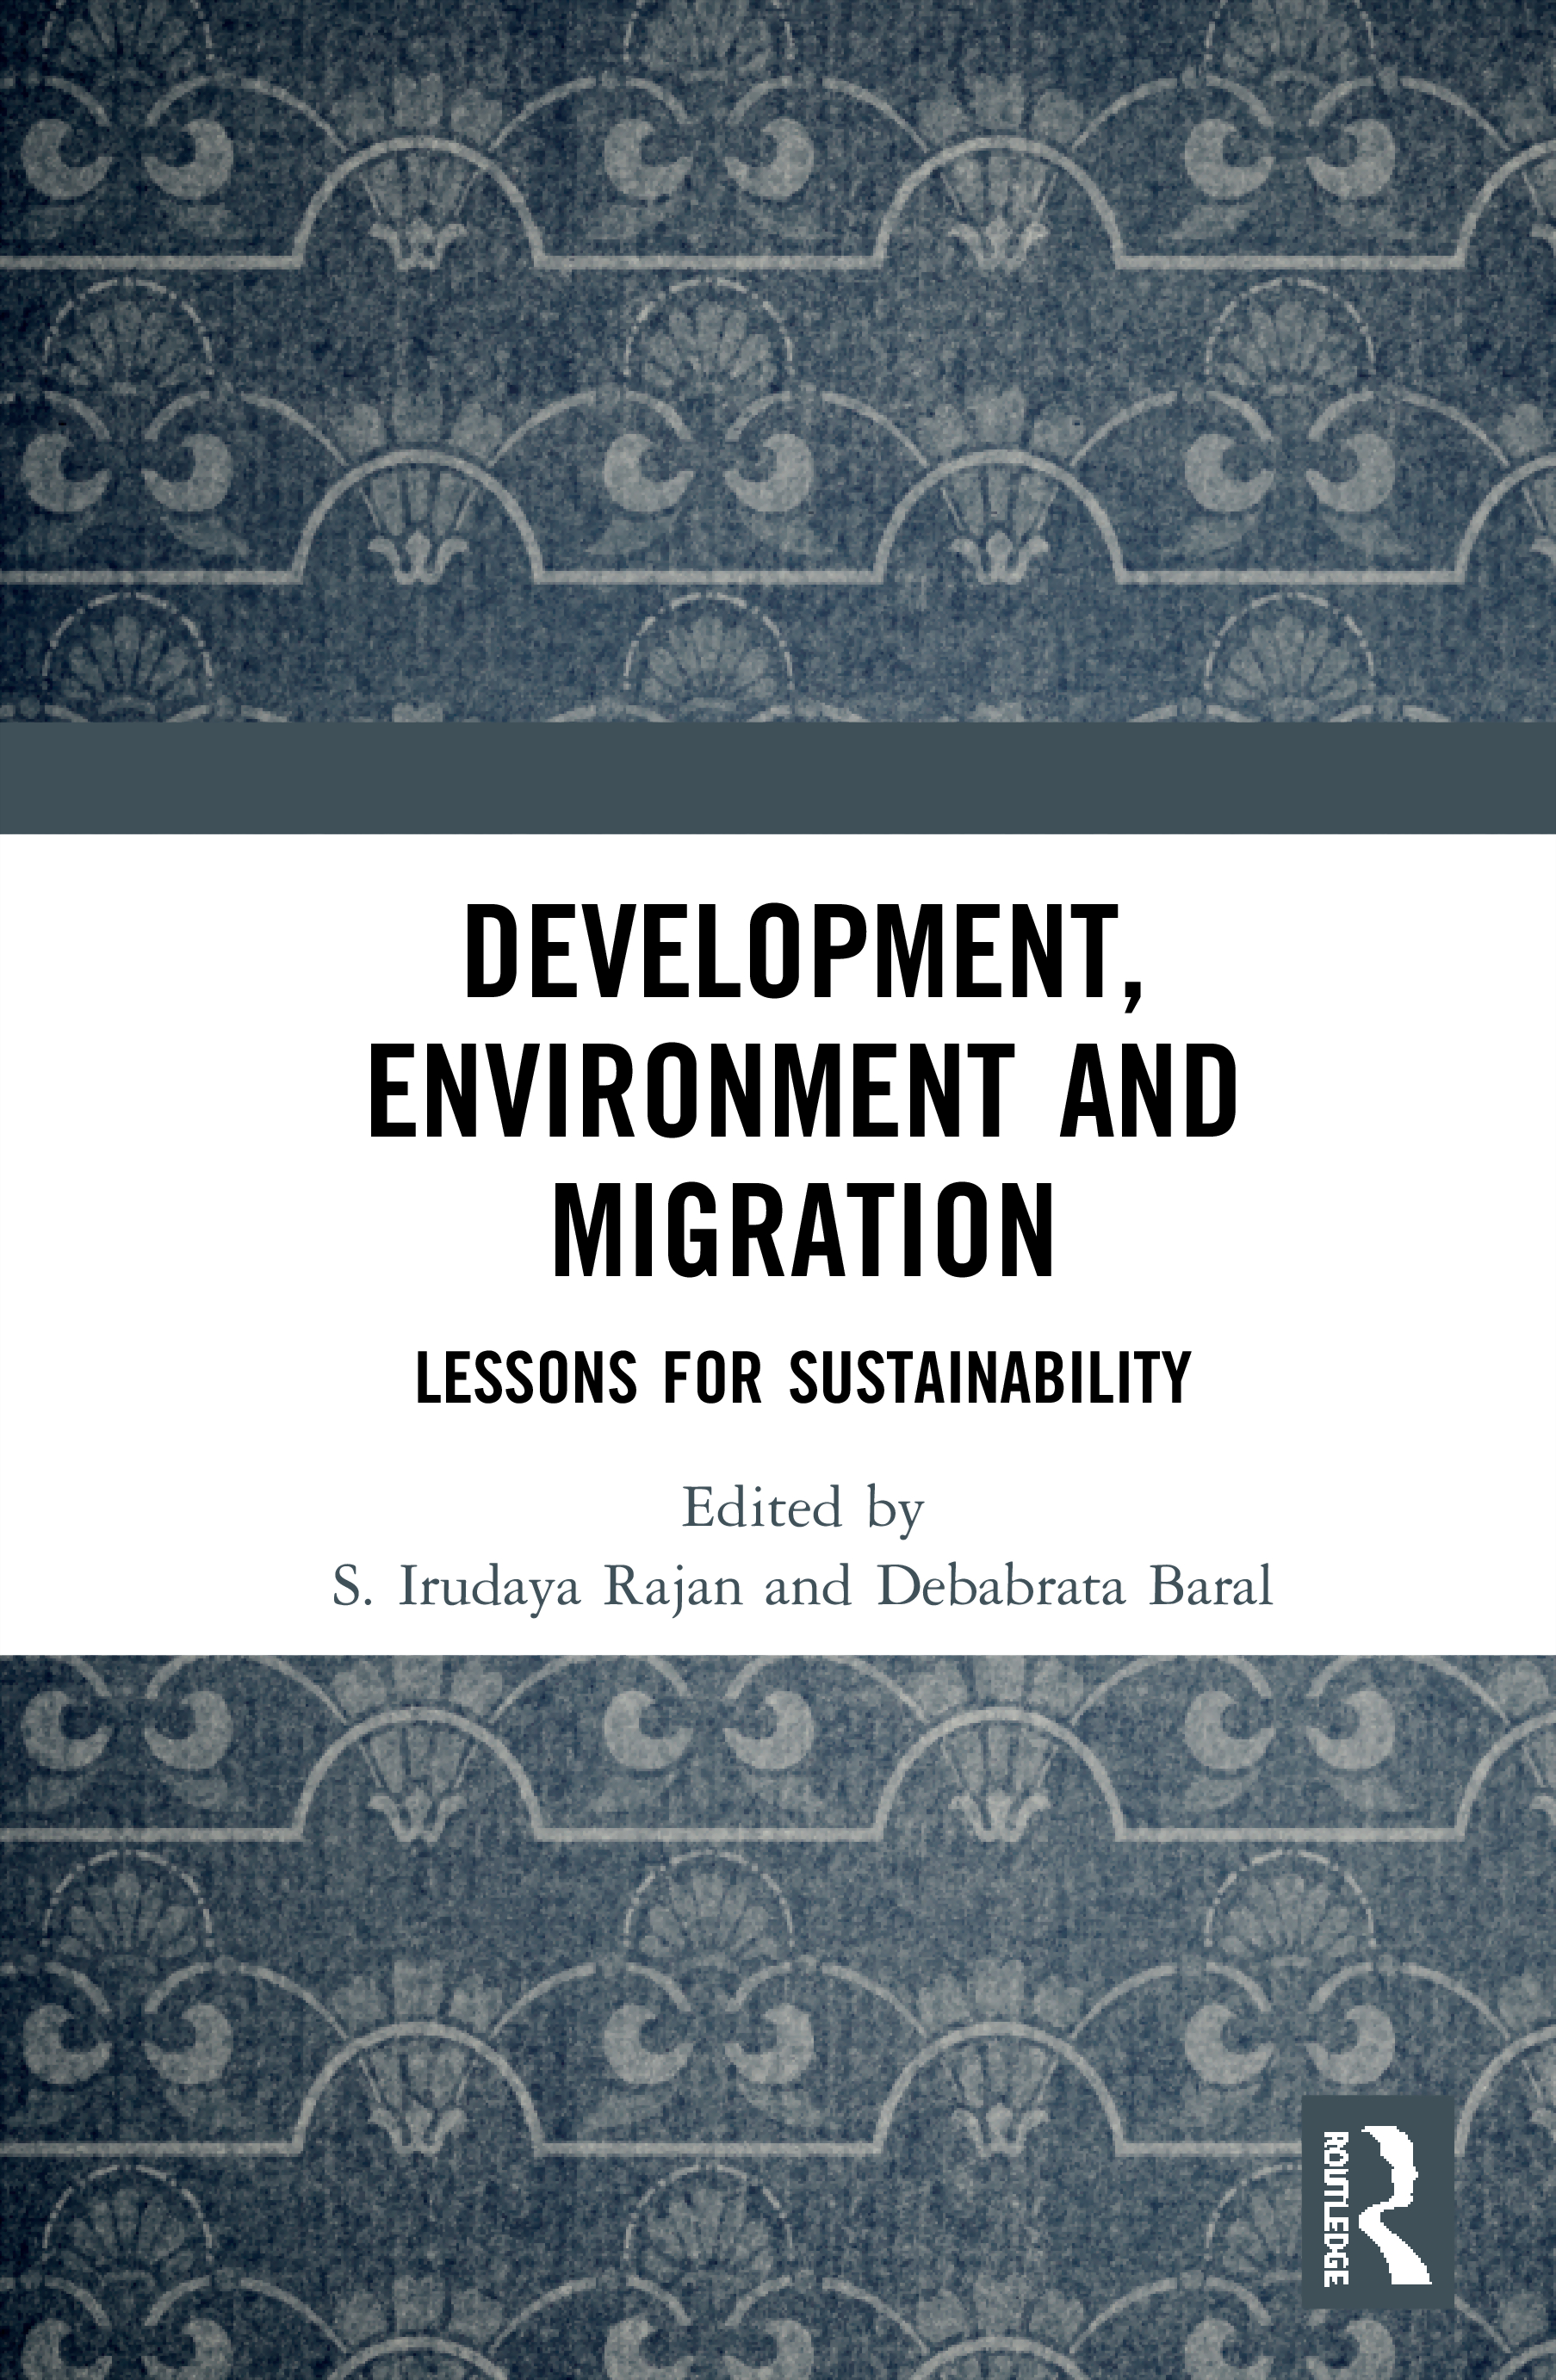 Development, Environment and Migration: Lessons for Sustainability book cover